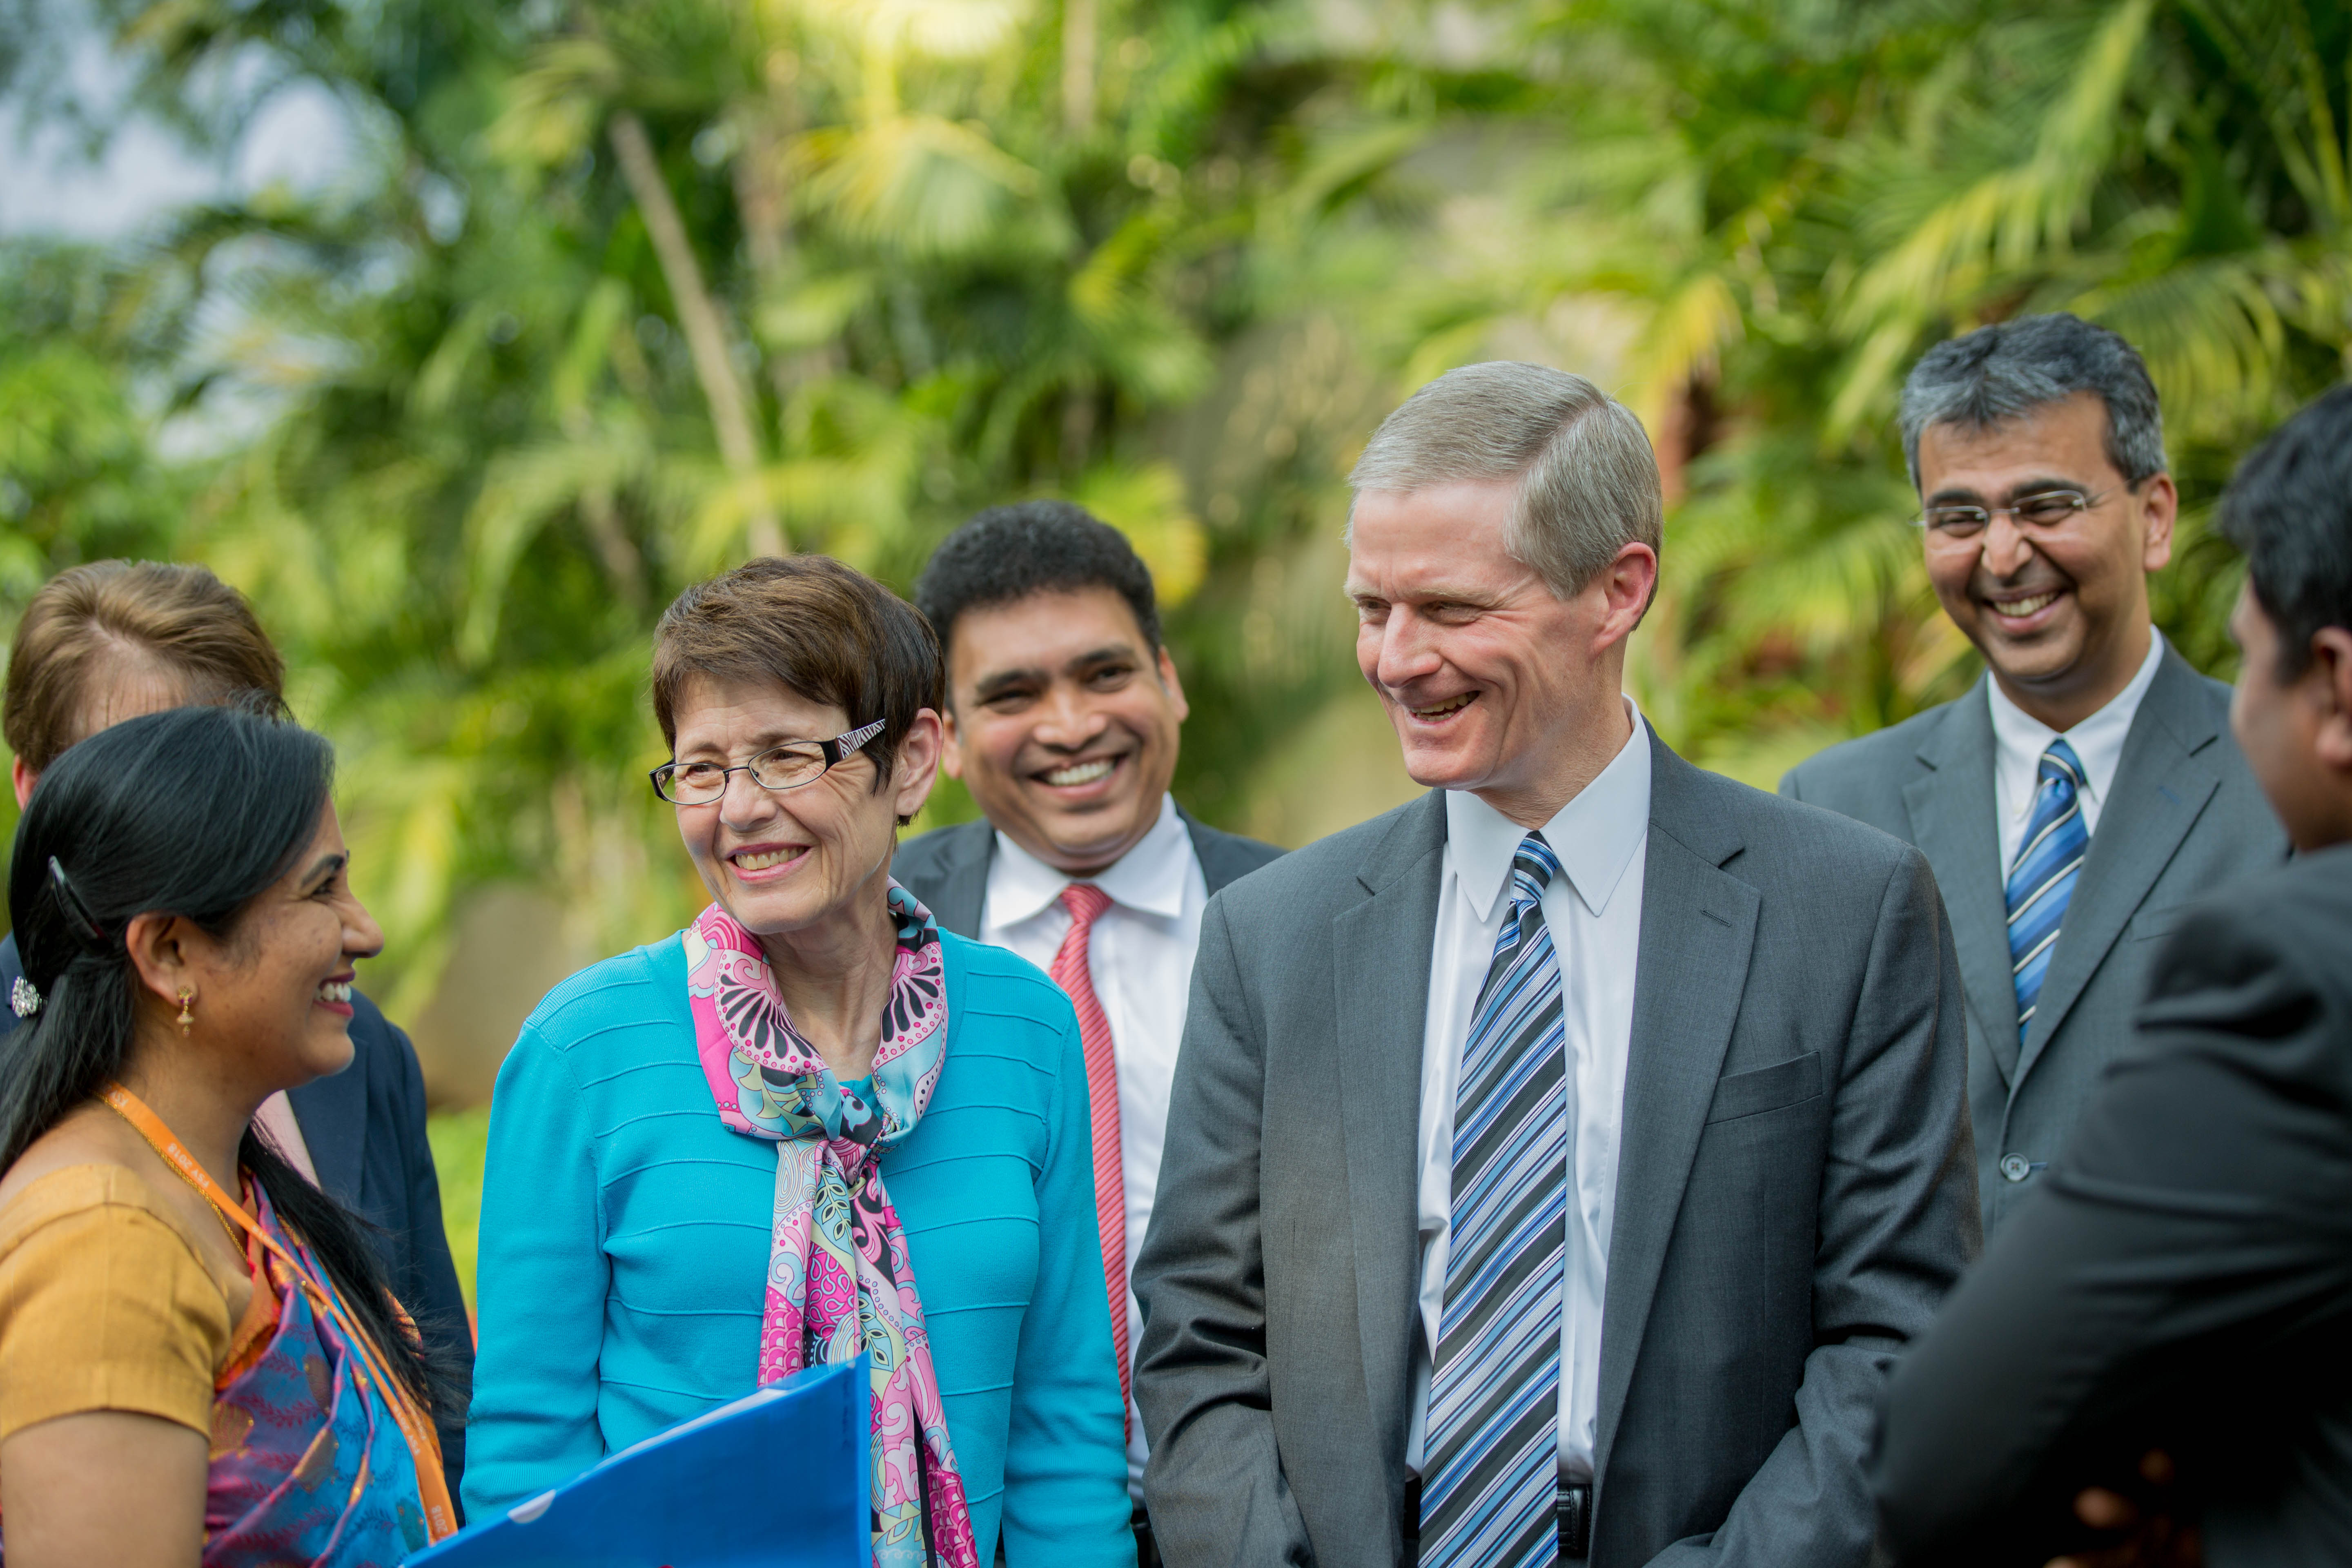 Elder David A. Bednar of the Quorum of the Twelve Apostles and his wife, Sister Susan R. Bednar, meet with members in India.